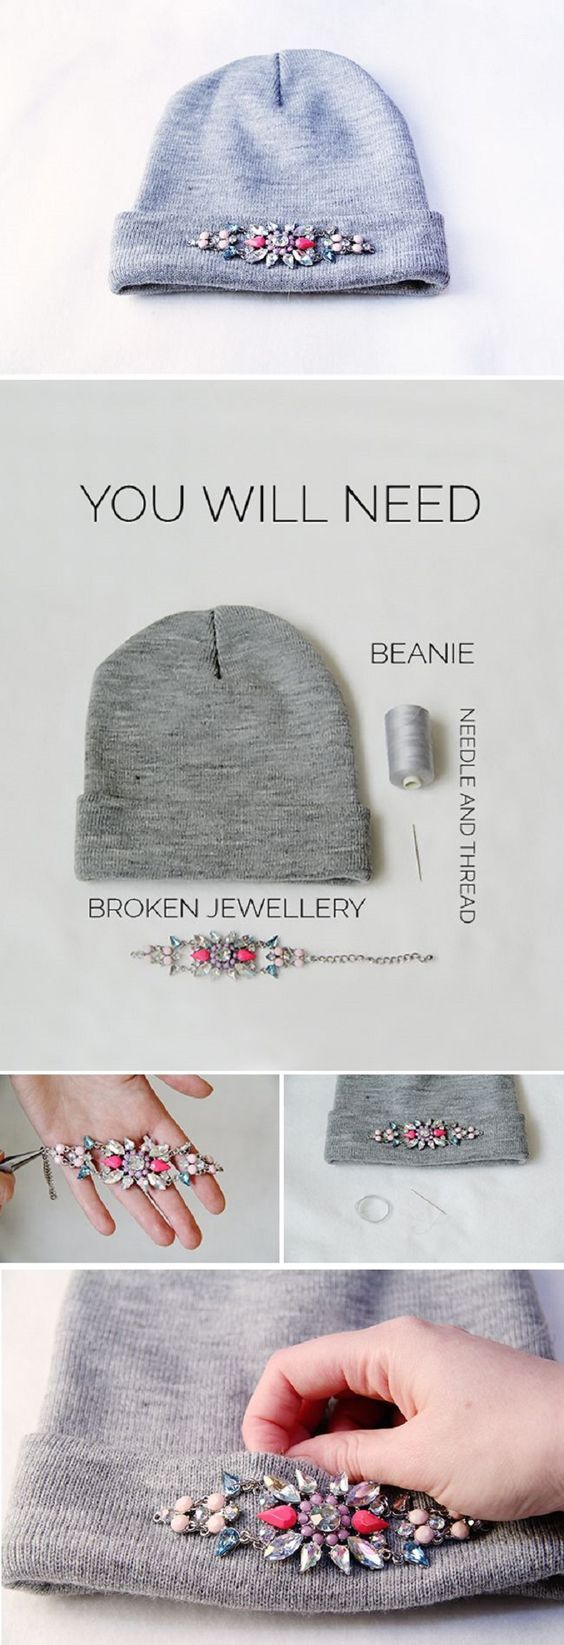 Bejewelled Beanie DIY - 15 Chic Winter Fashion DIYs That Are Totally Easy | GleamItUp: